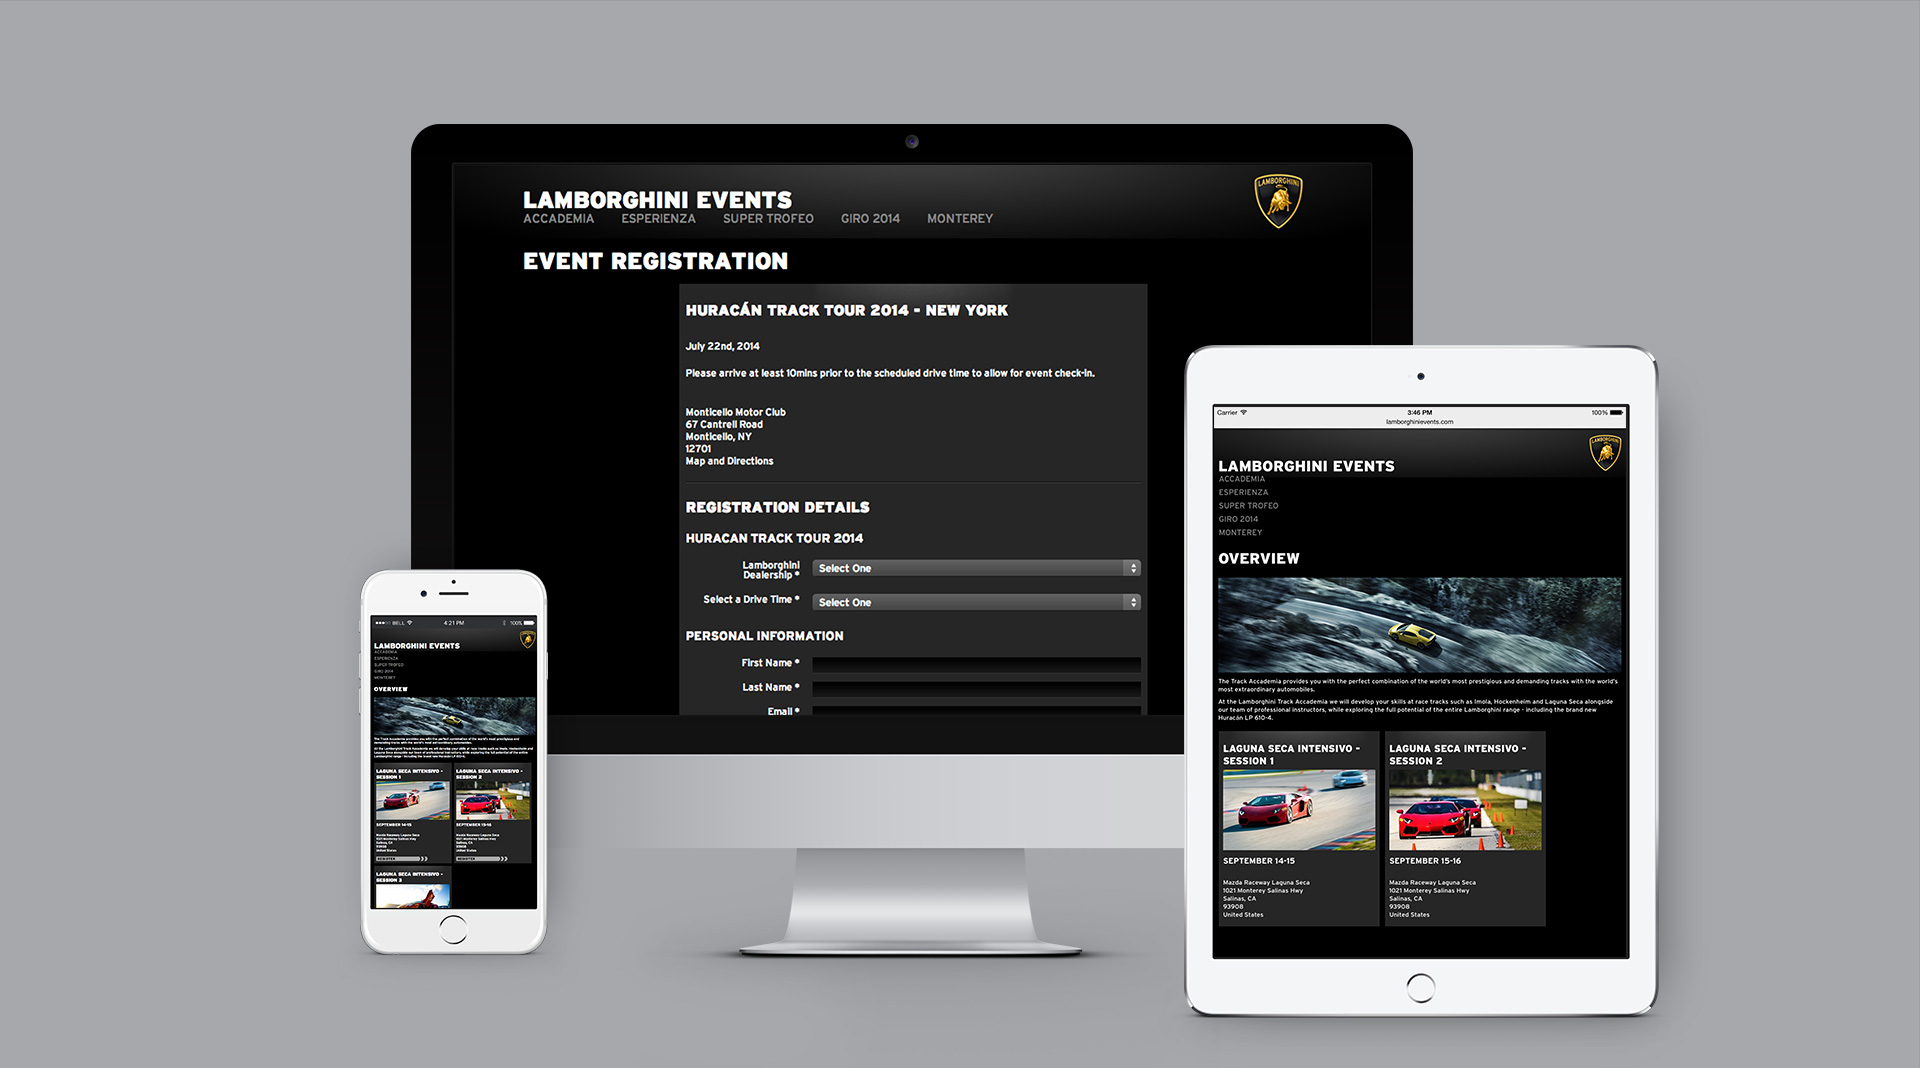 Register.LamborghiniEvents